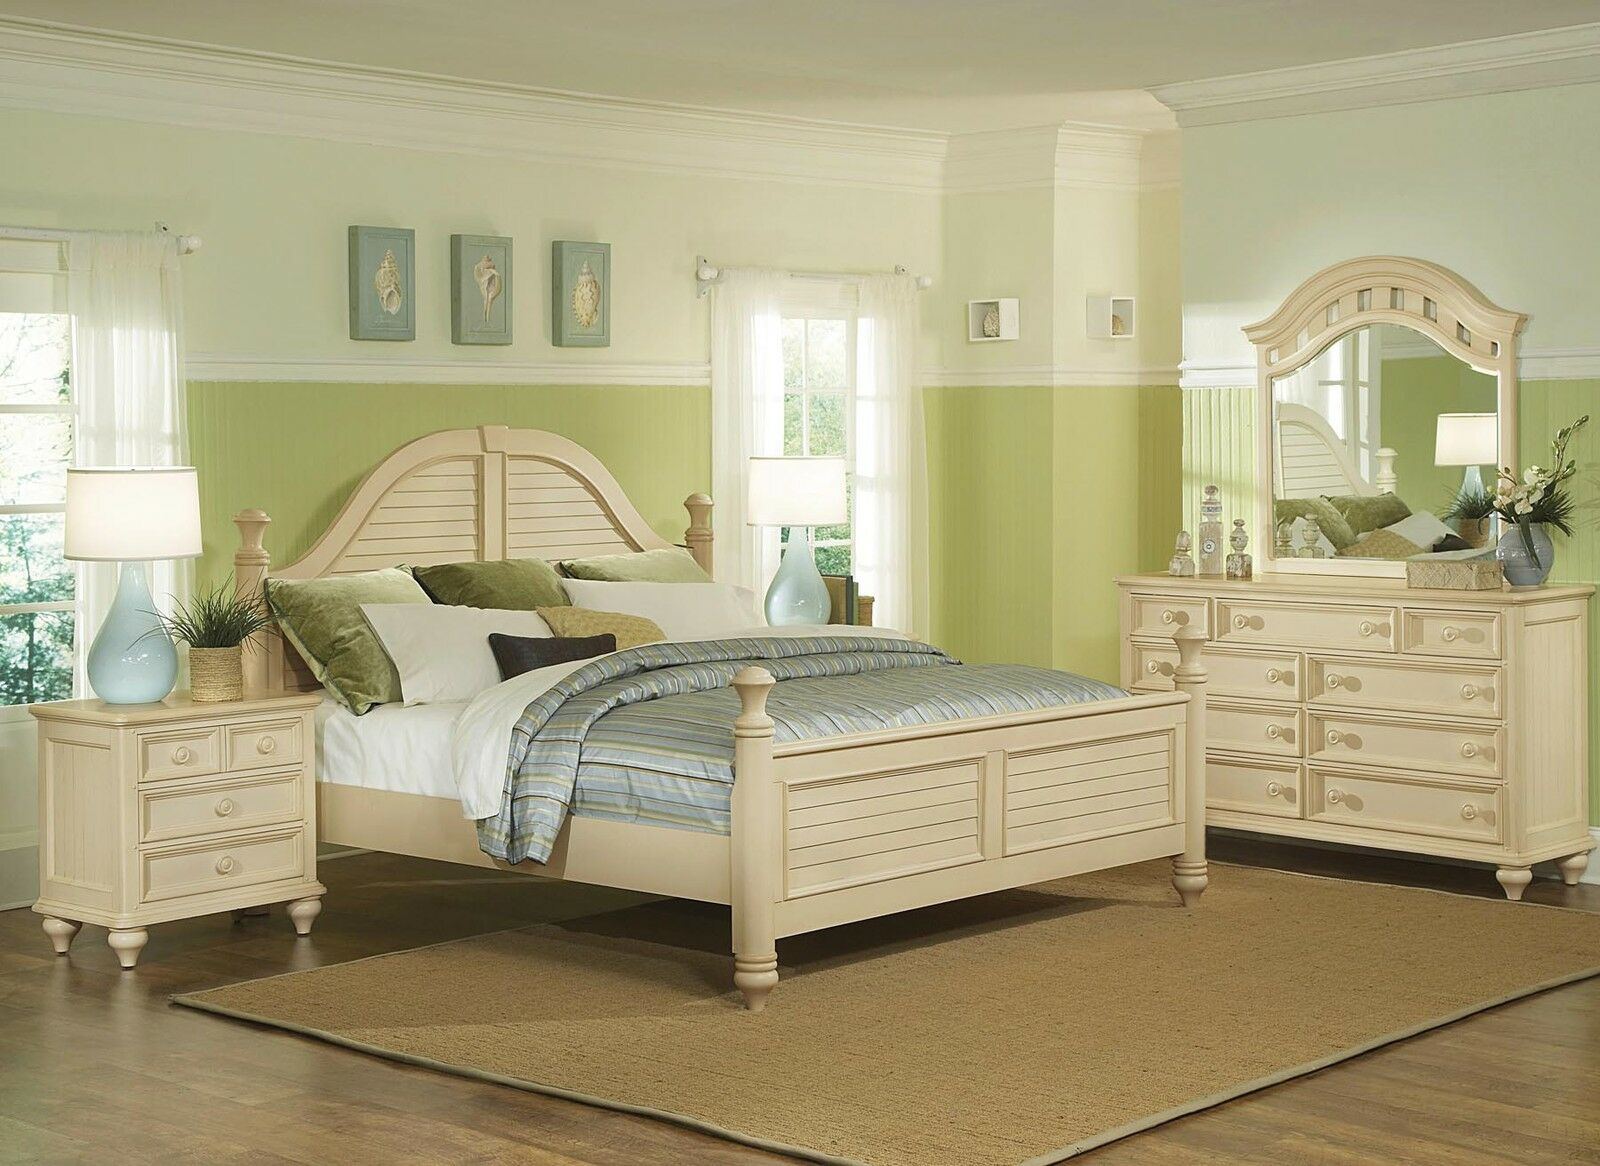 Wonderful Antique White Bedroom Furniture 1600 x 1166 · 246 kB · jpeg